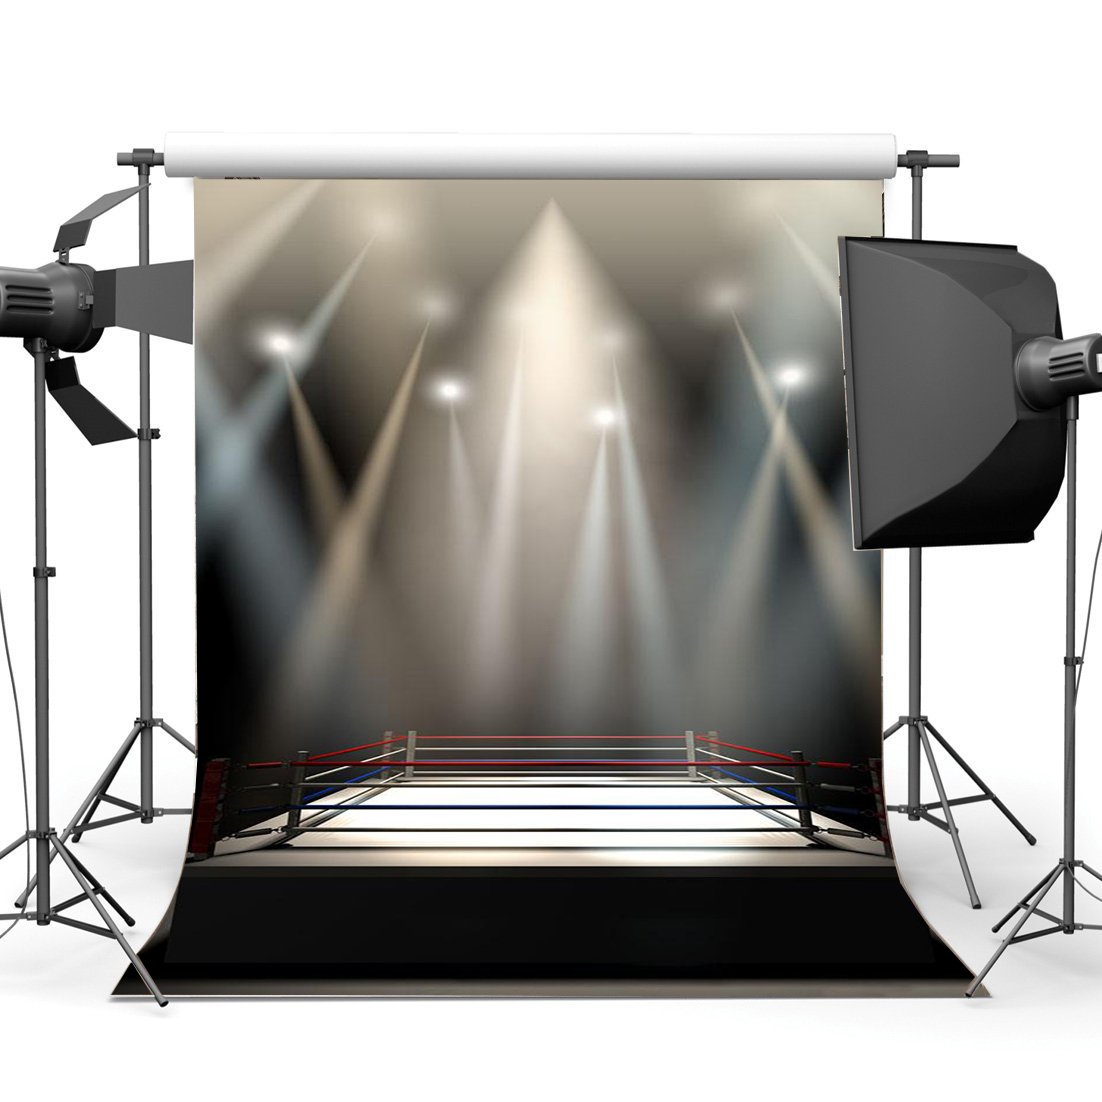 Boxing Ring Backdrop Boxing Backdrops Interior Stadium Stage Lights Dark Athletic Sports Gymnasium Background-in Photo Studio Accessories from Consumer Electronics